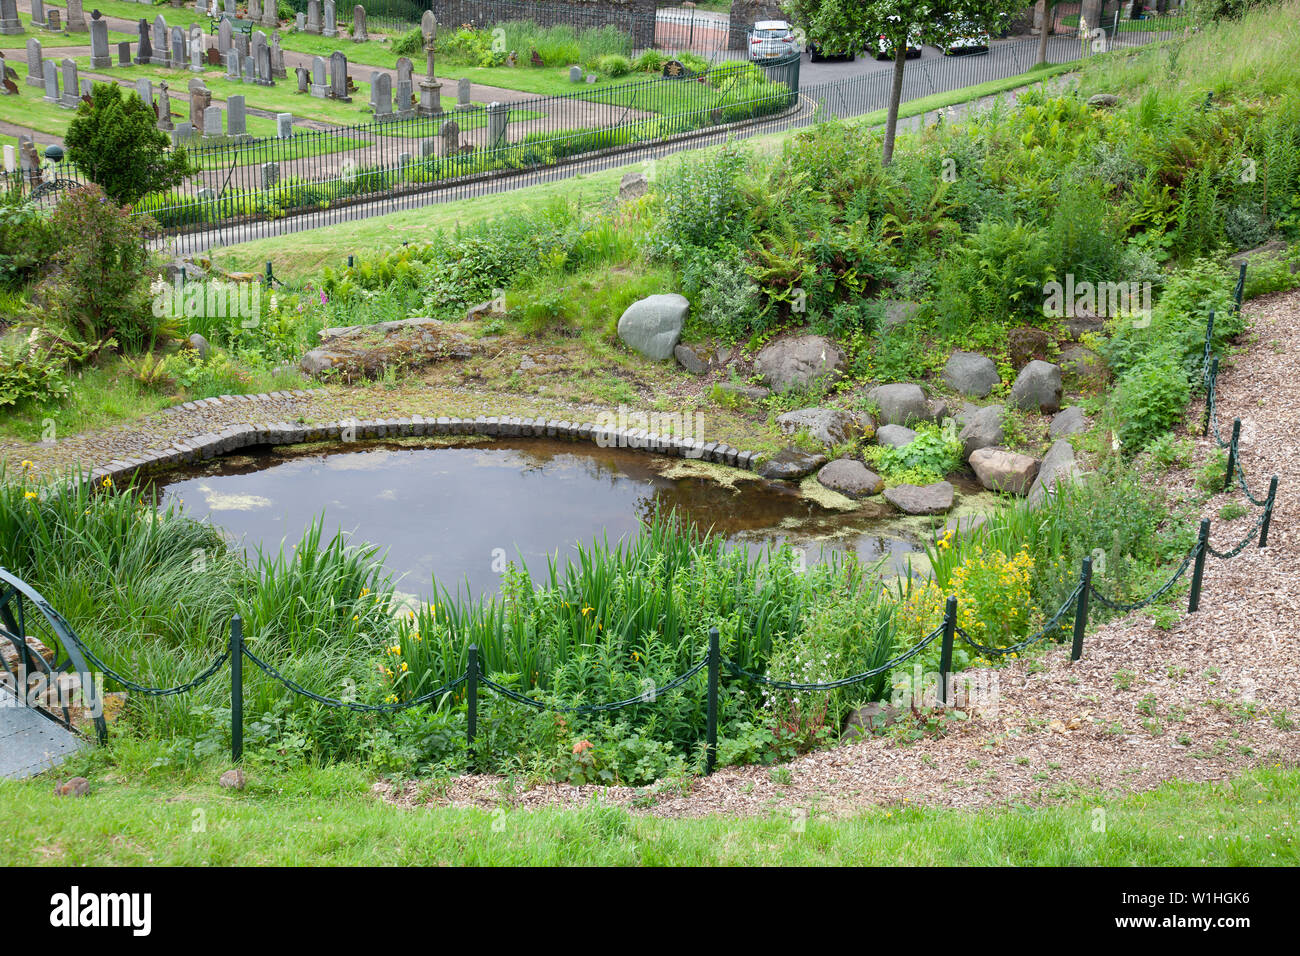 Pithy Mary Pond, a restored ornamental pond in the Drummond Pleasure ground, Stirling, Scotland, with part of the Old Town Cemetery behind. - Stock Image